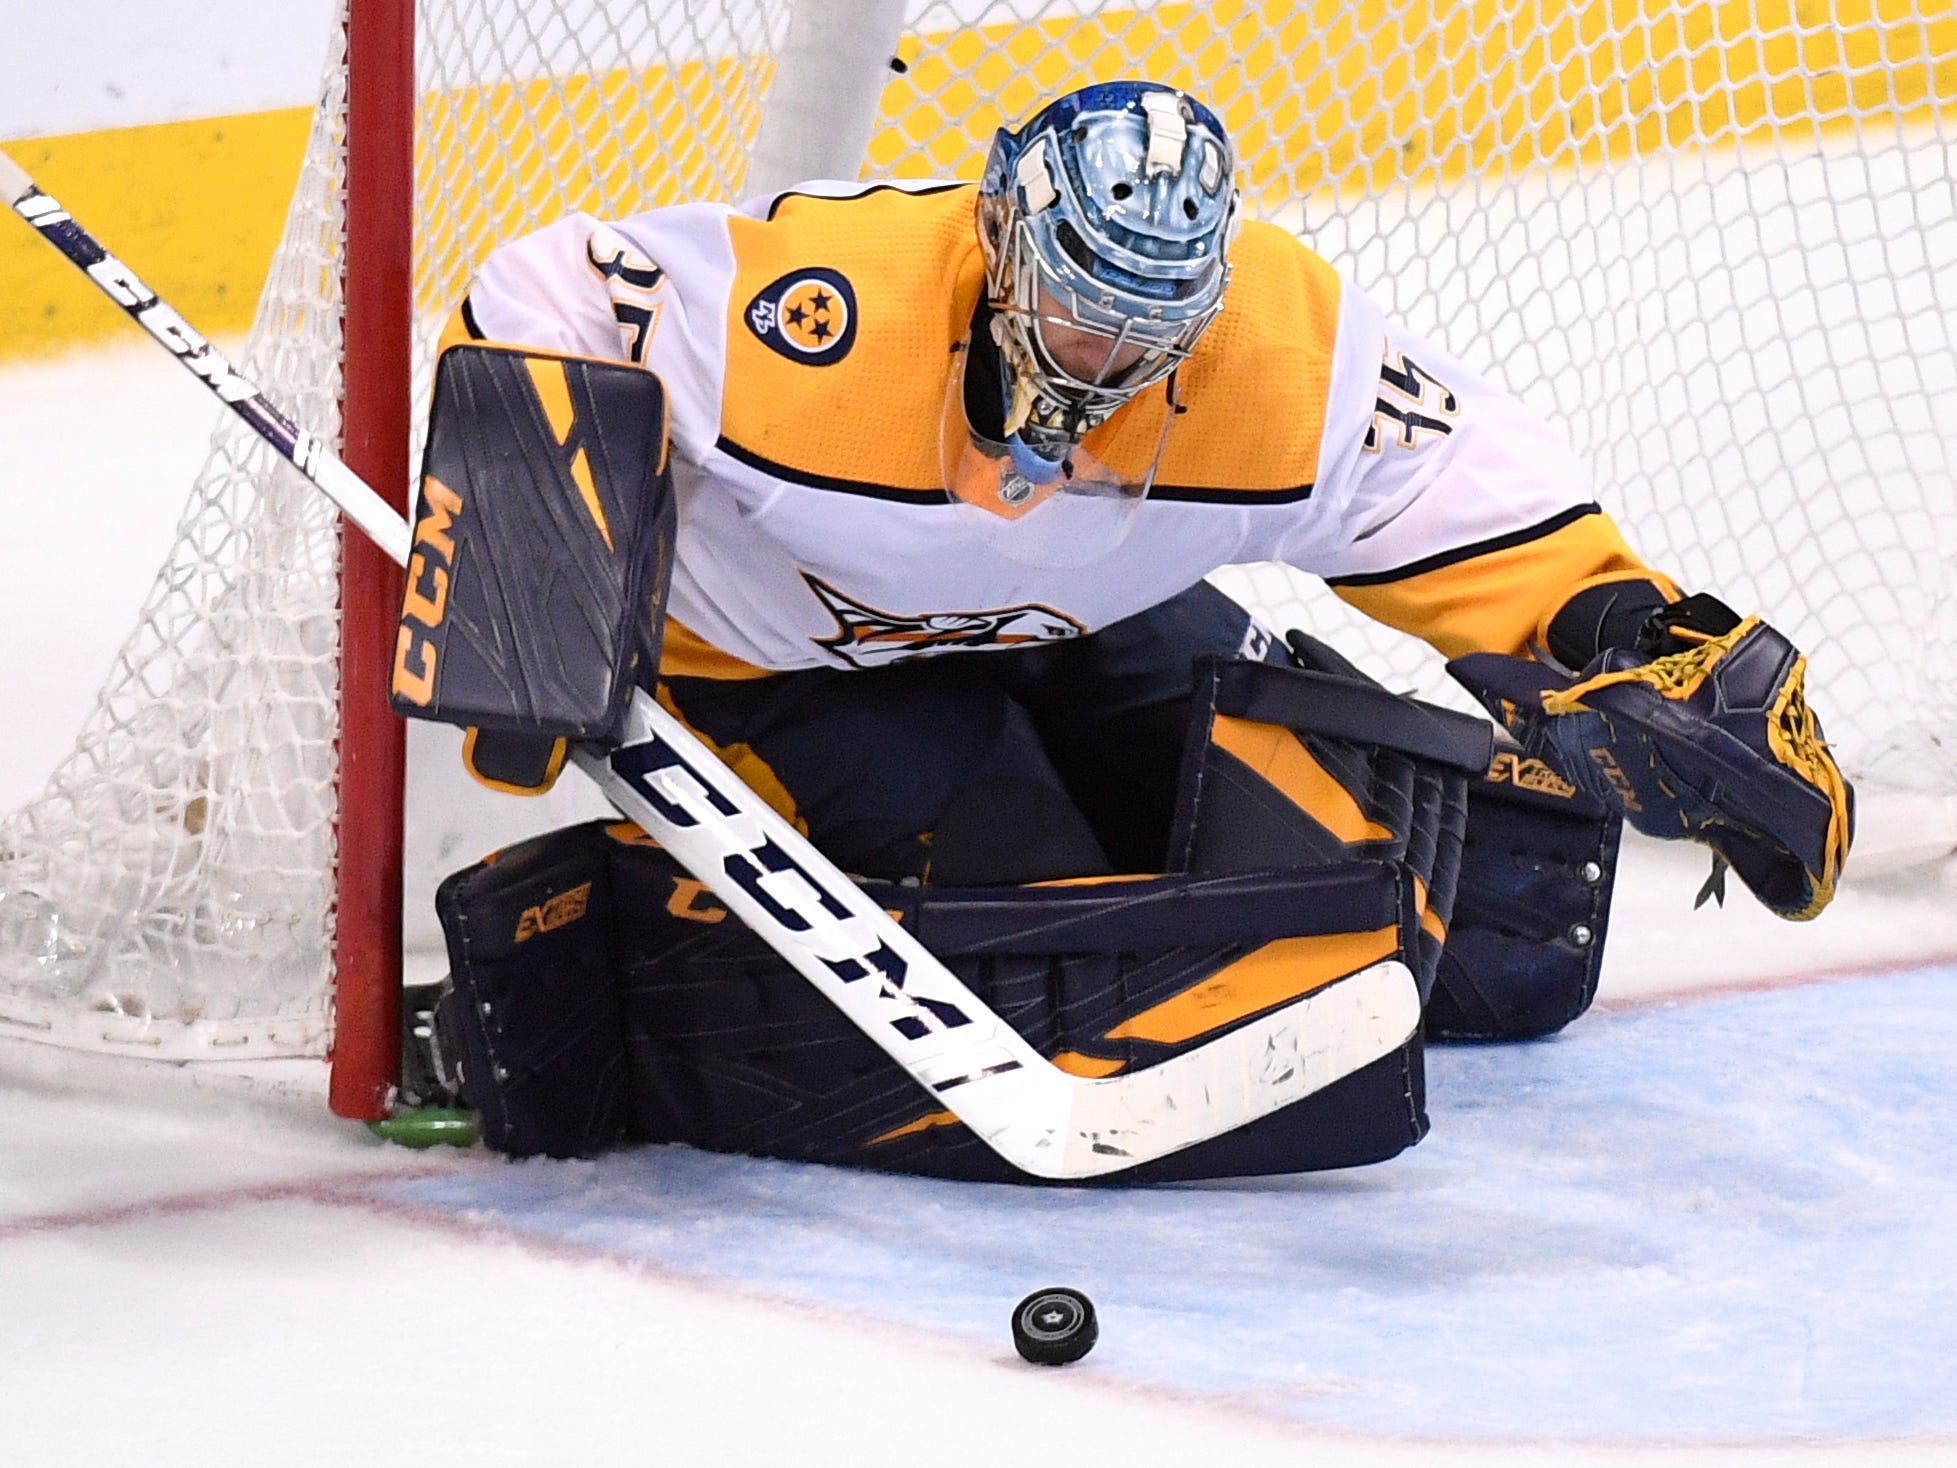 Nashville Predators goaltender Pekka Rinne (35) defends the net during the third period of the divisional semifinal game at the American Airlines Center in Dallas, Texas, Monday, April 22, 2019.